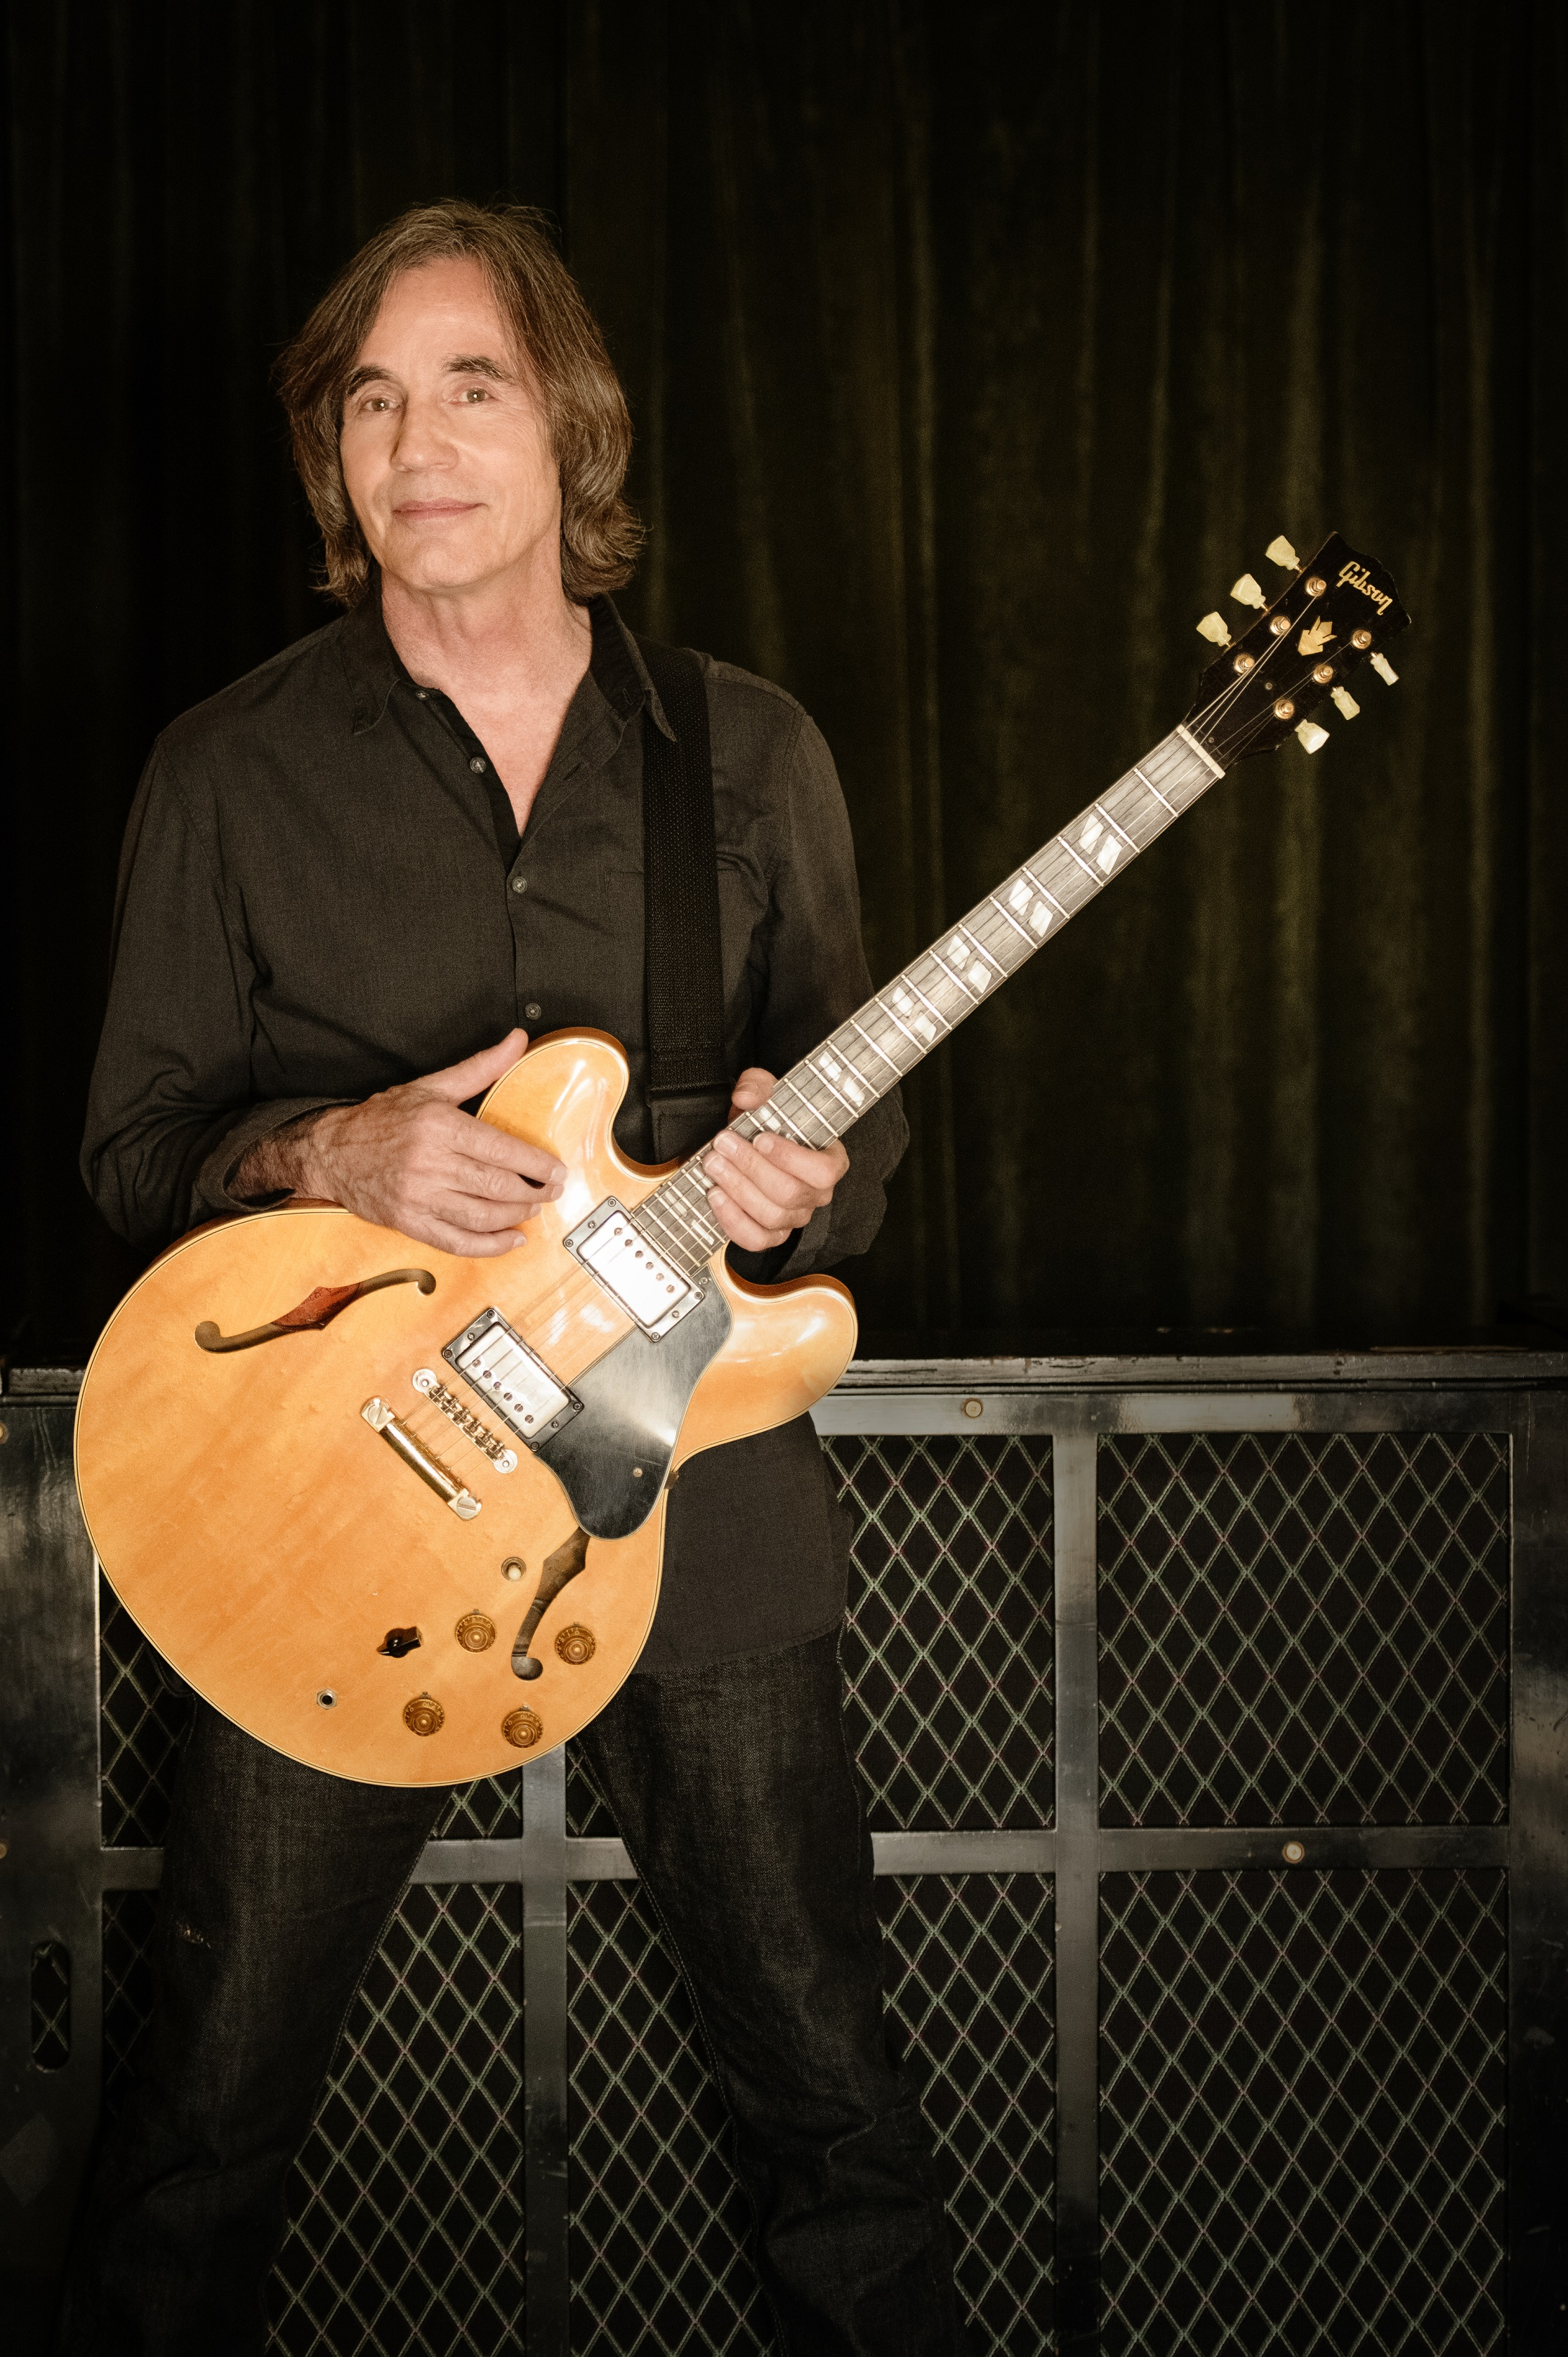 Jackson Browne getting ready for the show. Photo credit: Jackson Browne, courtesy of the artist.